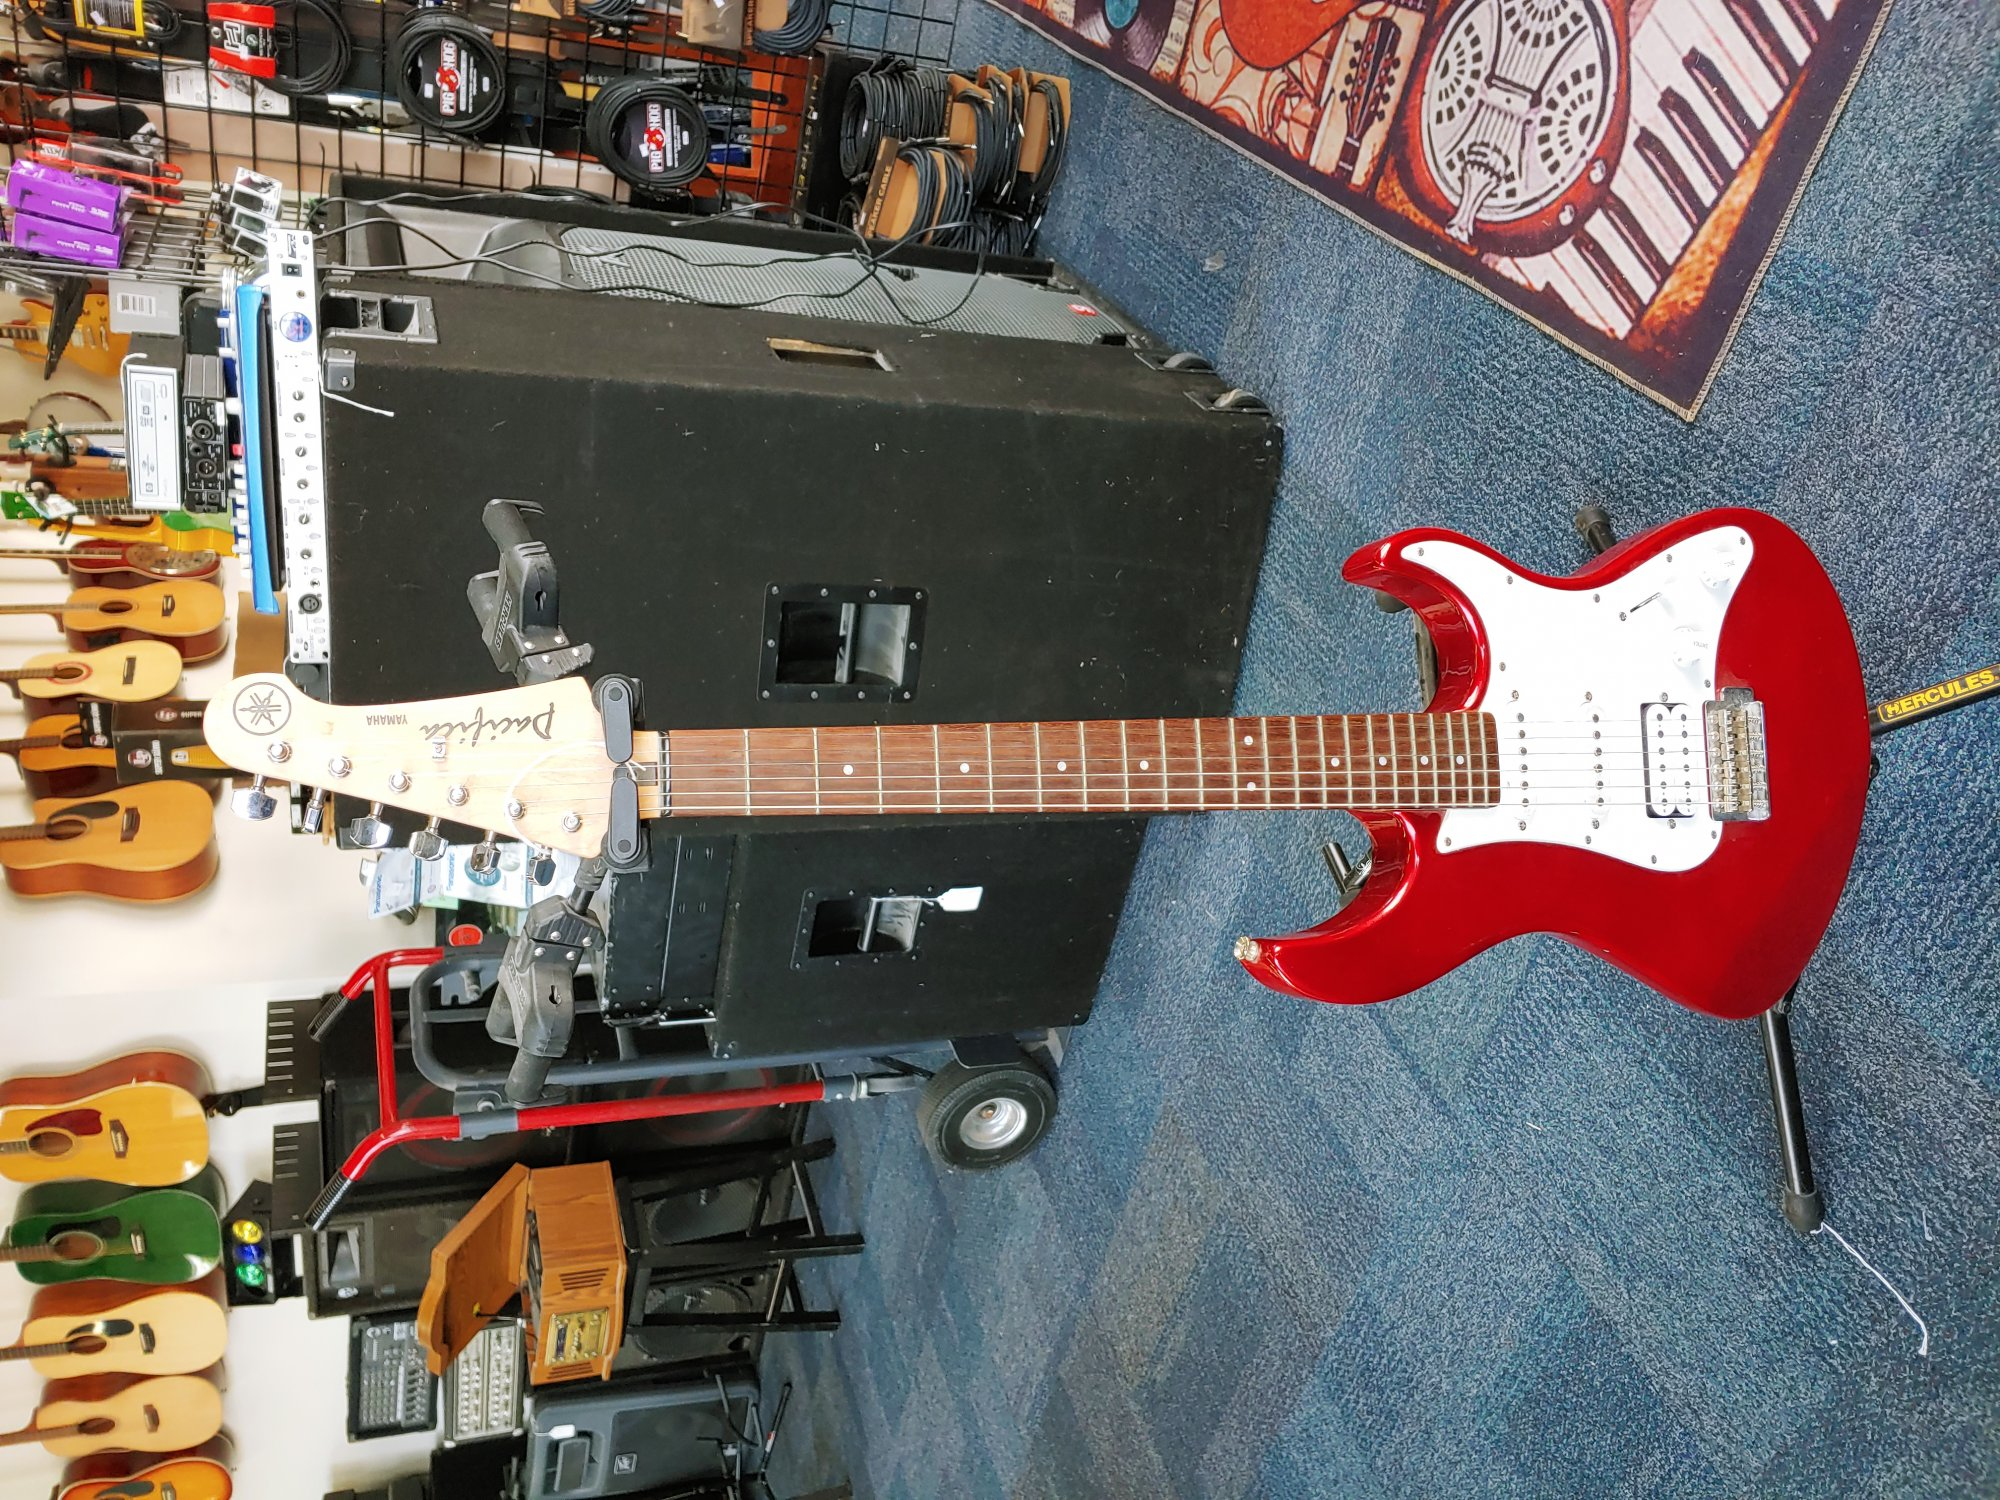 Yamaha Pacifica PAC 012 Cherry Red Electric Guitar (consignment)